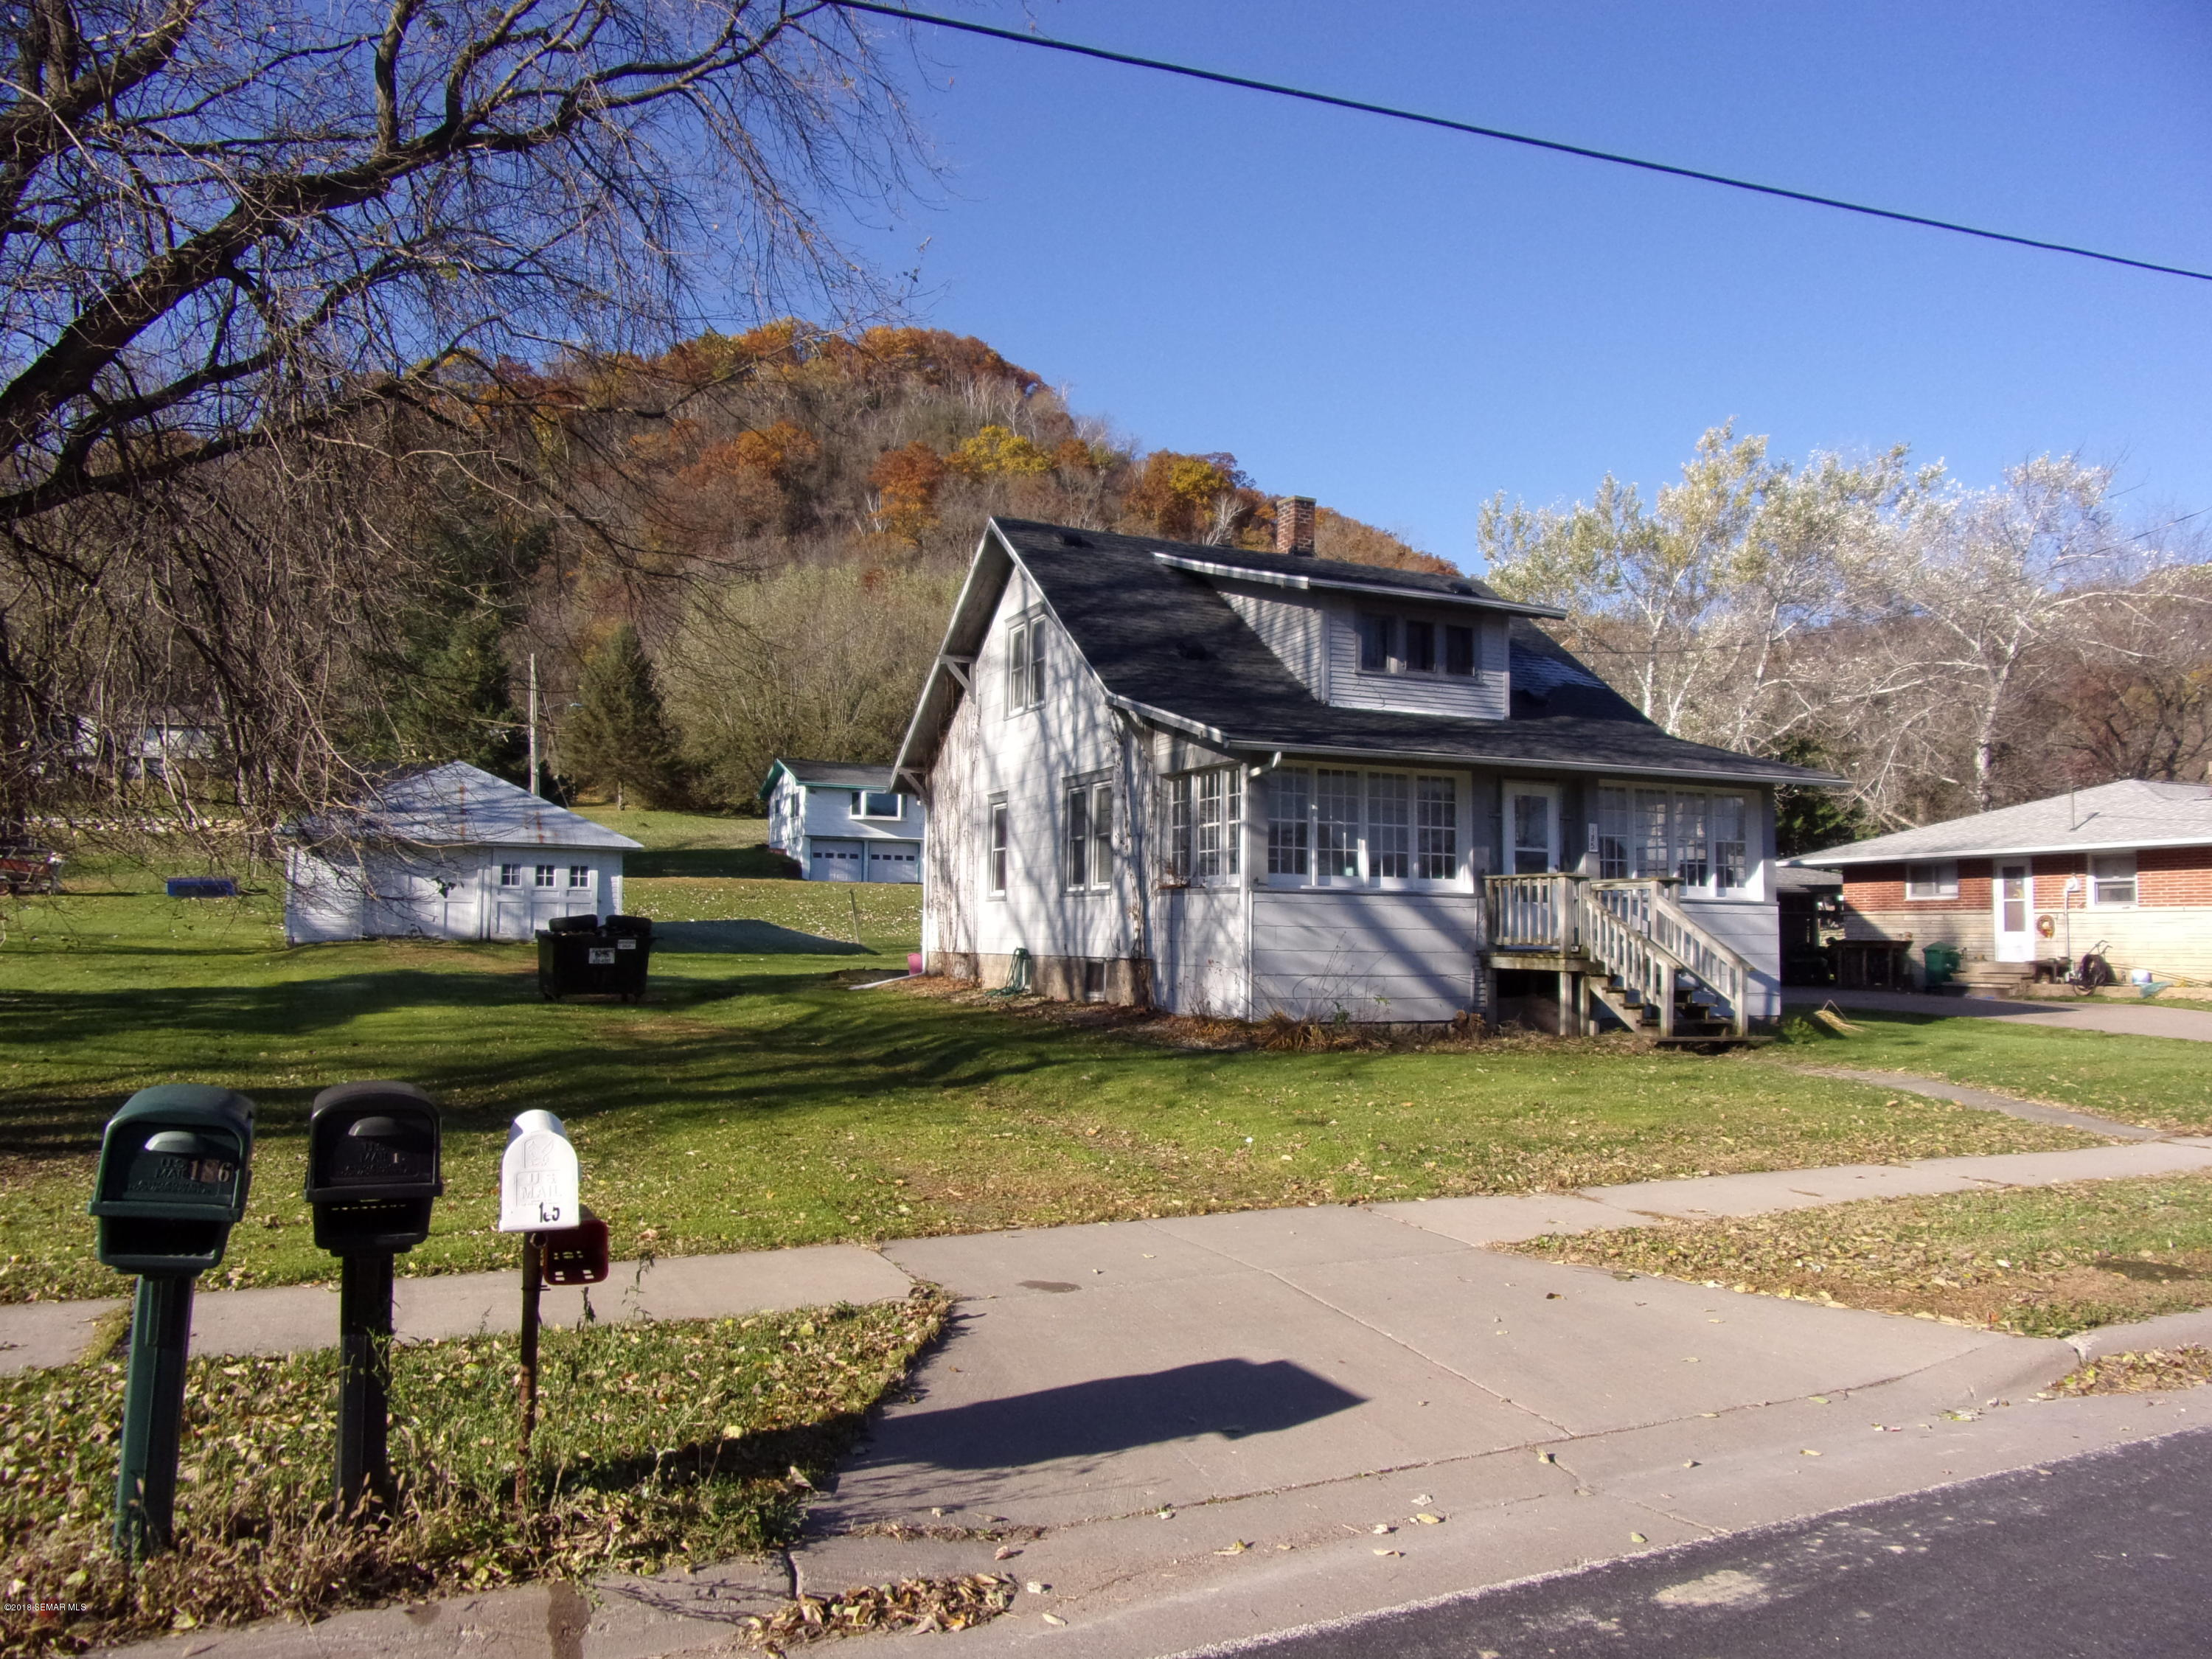 185 Broadway,Rollingstone,Minnesota 55969,3 Bedrooms Bedrooms,1 BathroomBathrooms,Single family residence,Broadway,4092428